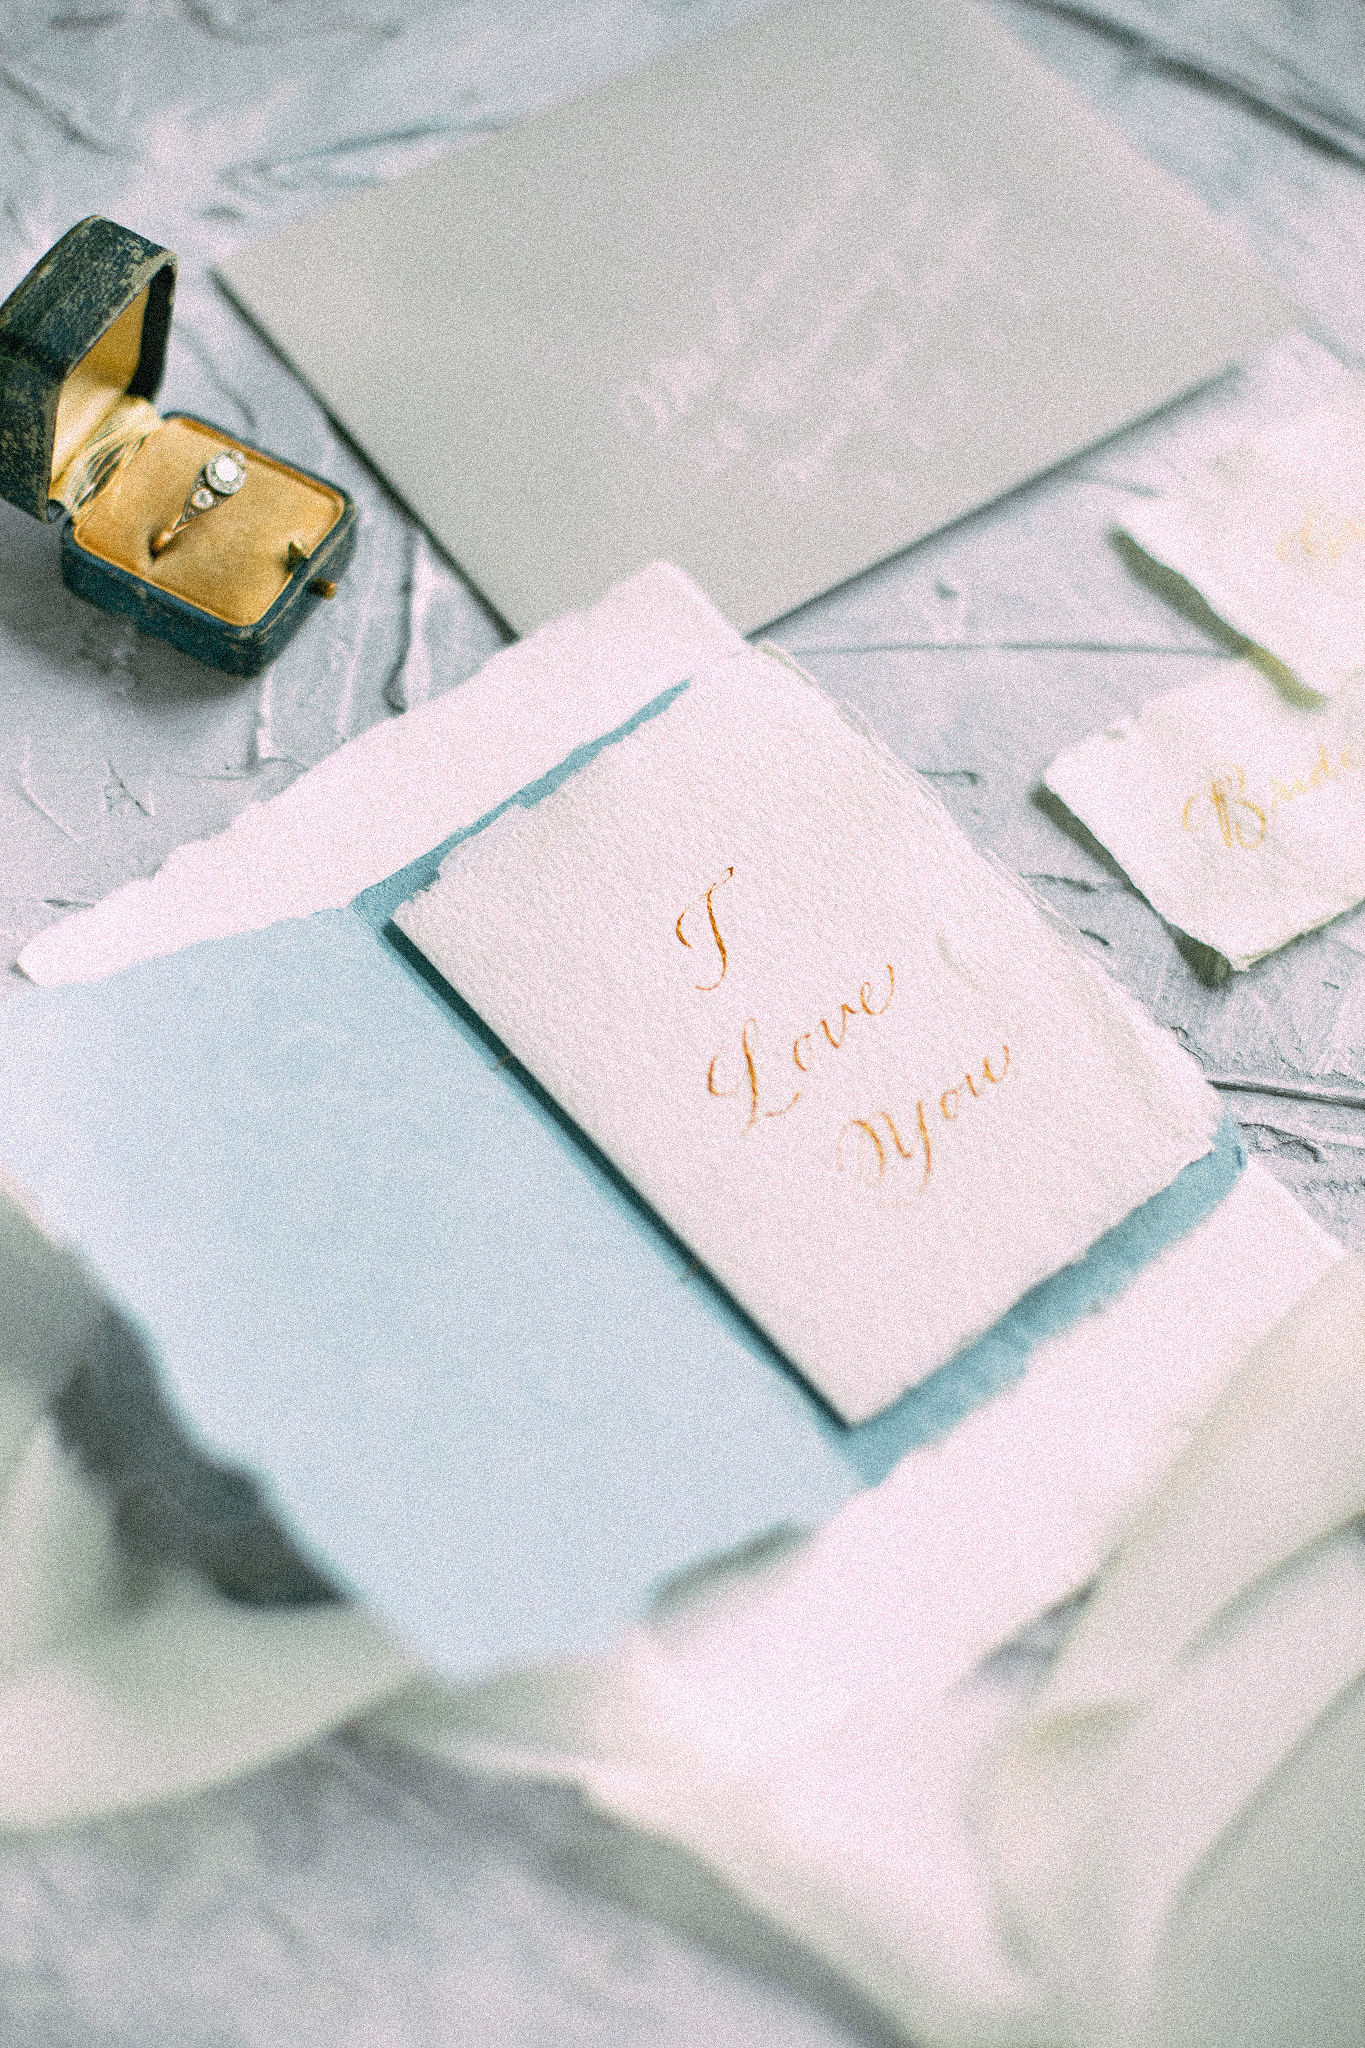 Custom crafted wedding vow booklets written in gold hand-calligraphy on hand-made paper | www.chavelli.com